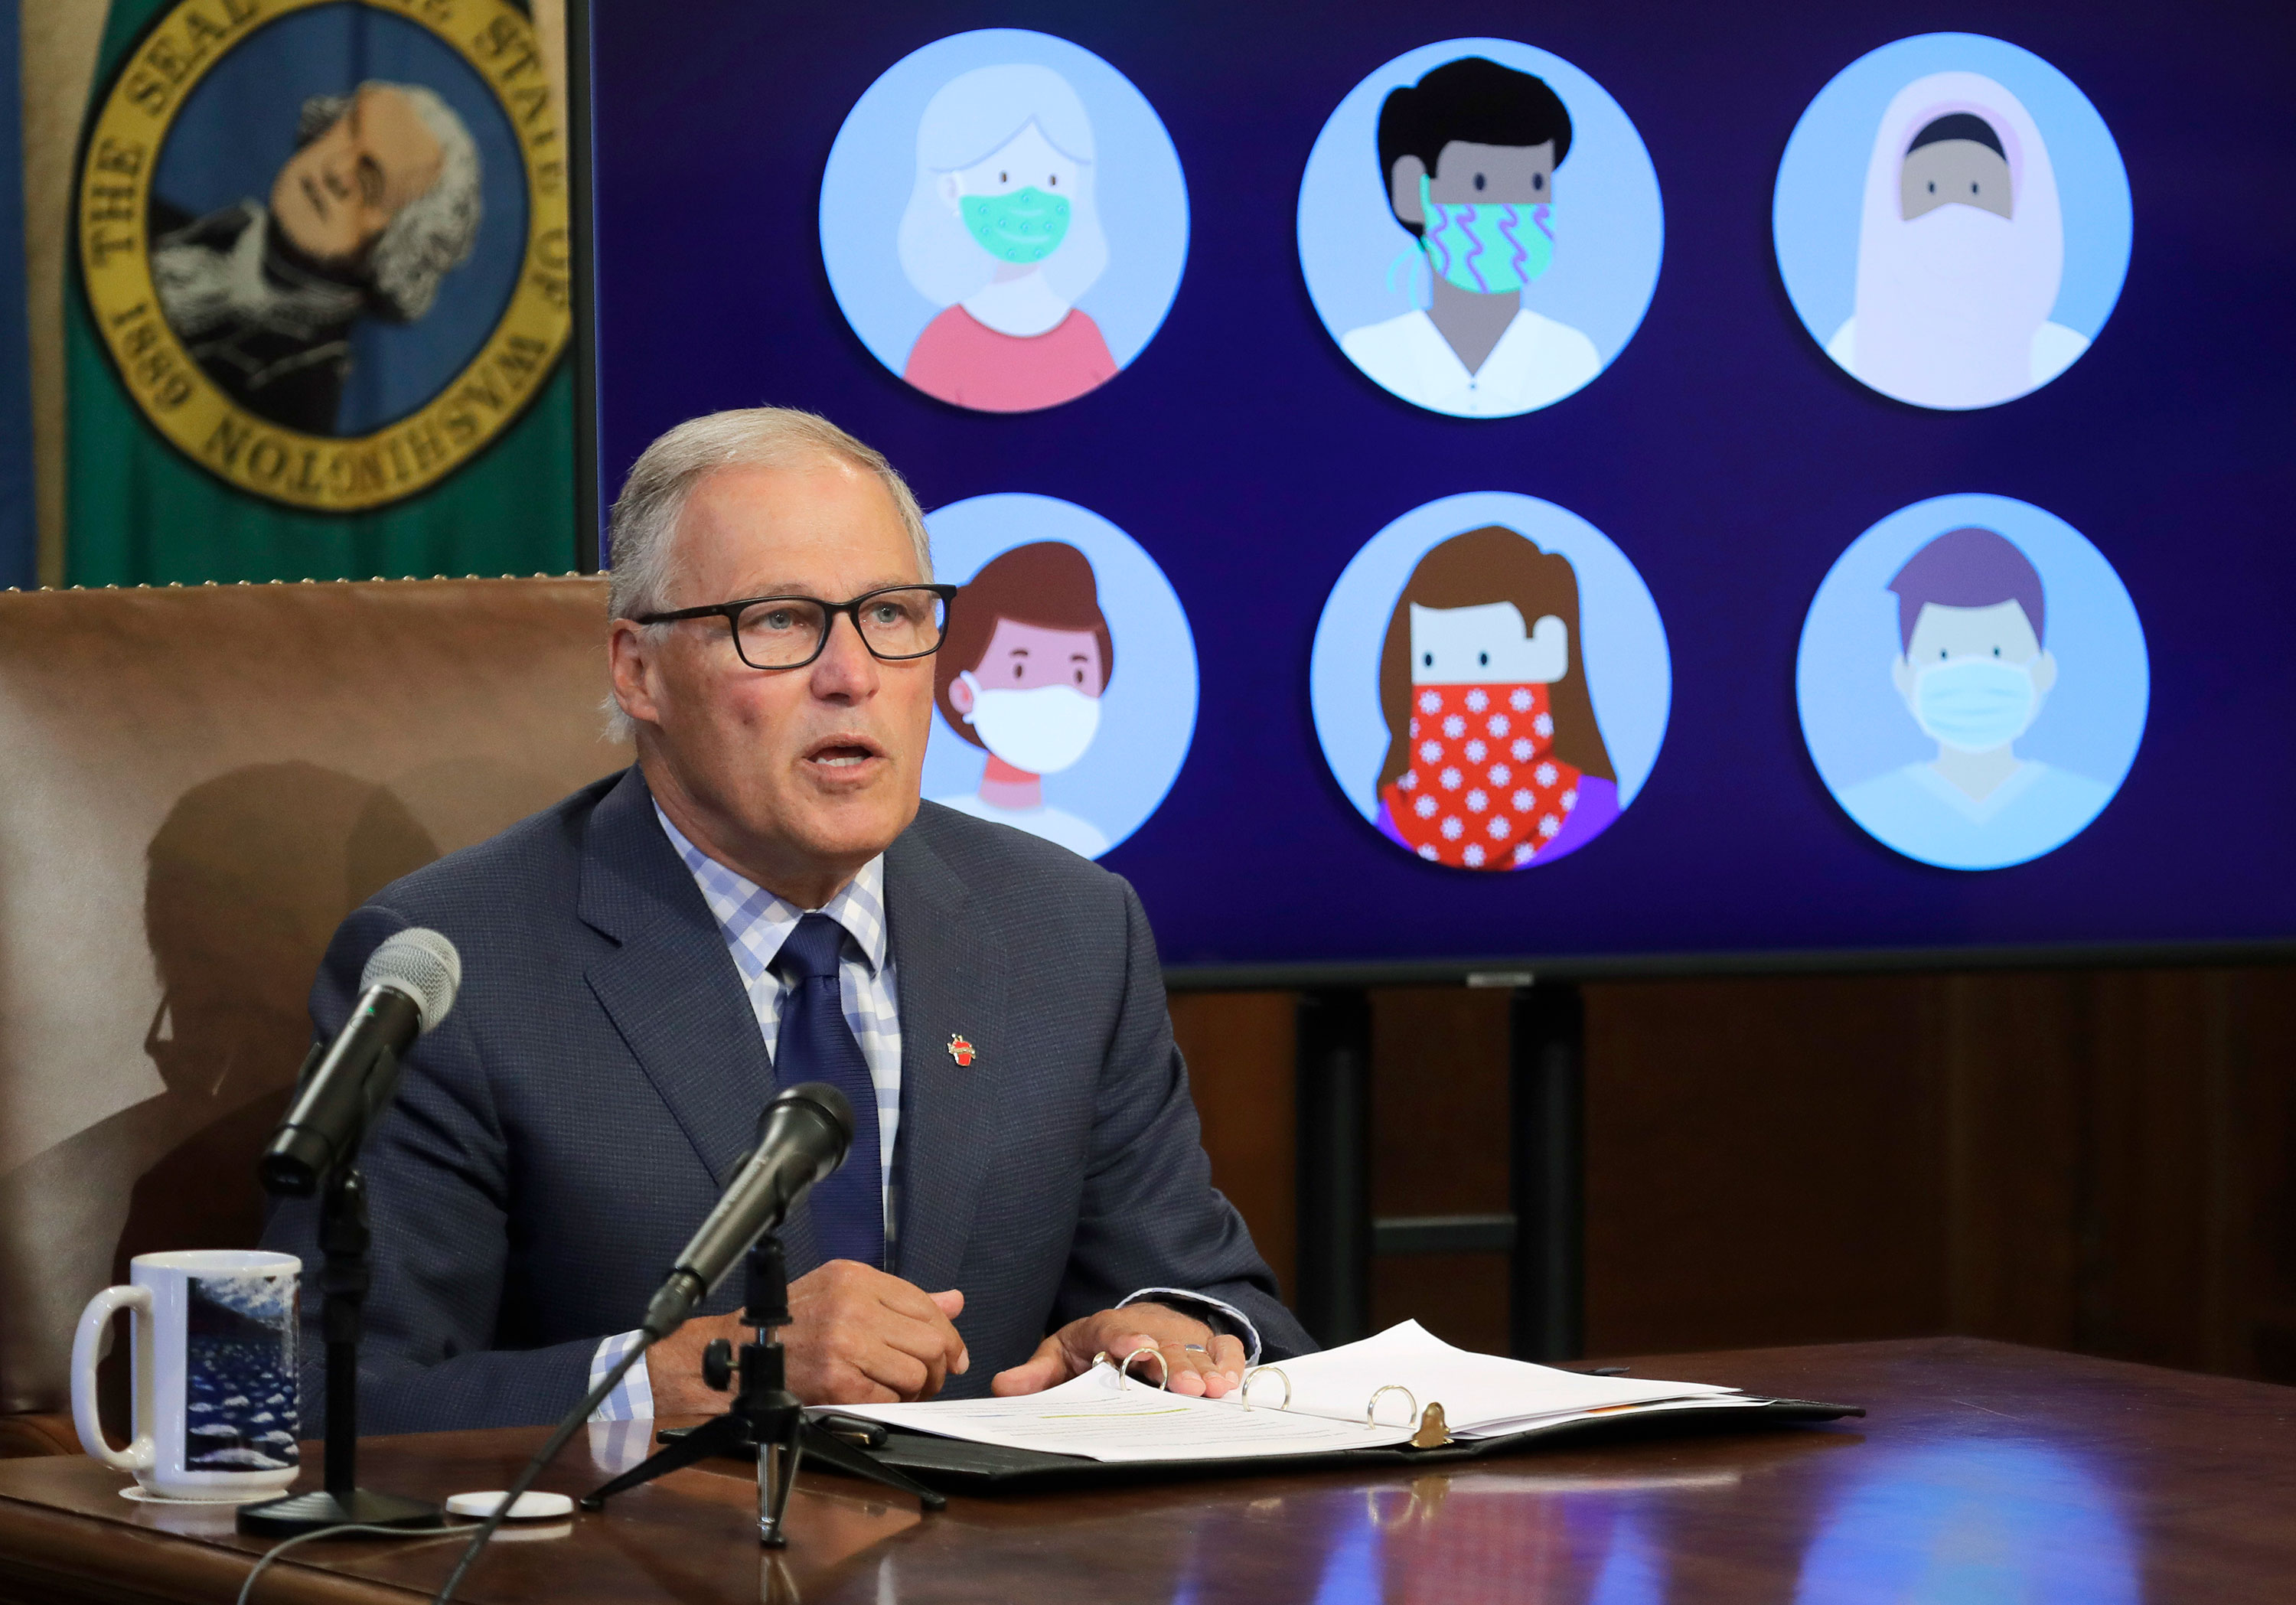 Washington Gov. Jay Inslee speaks during a news conference on Tuesday, June 23 at the Capitol in Olympia, Washington.